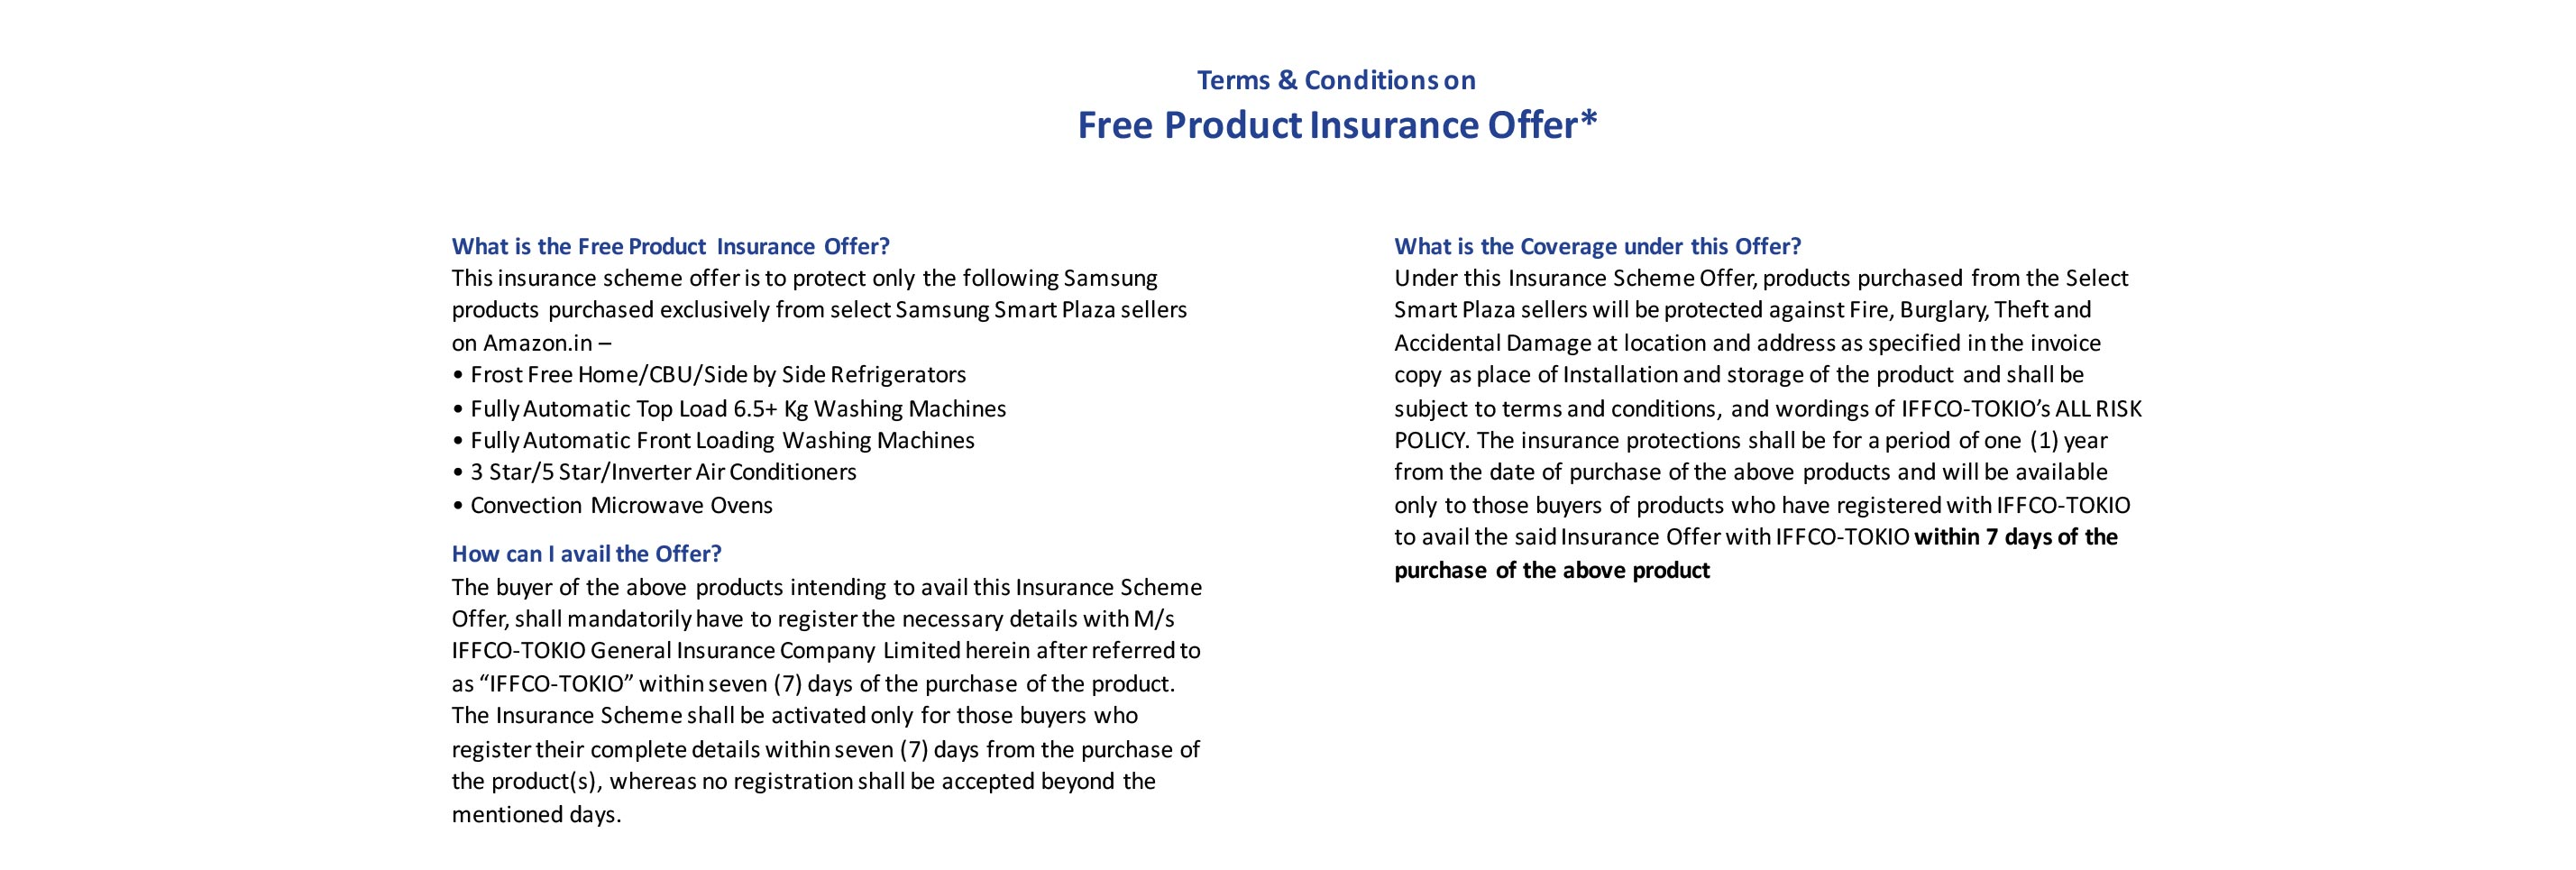 Product Insurance Offer